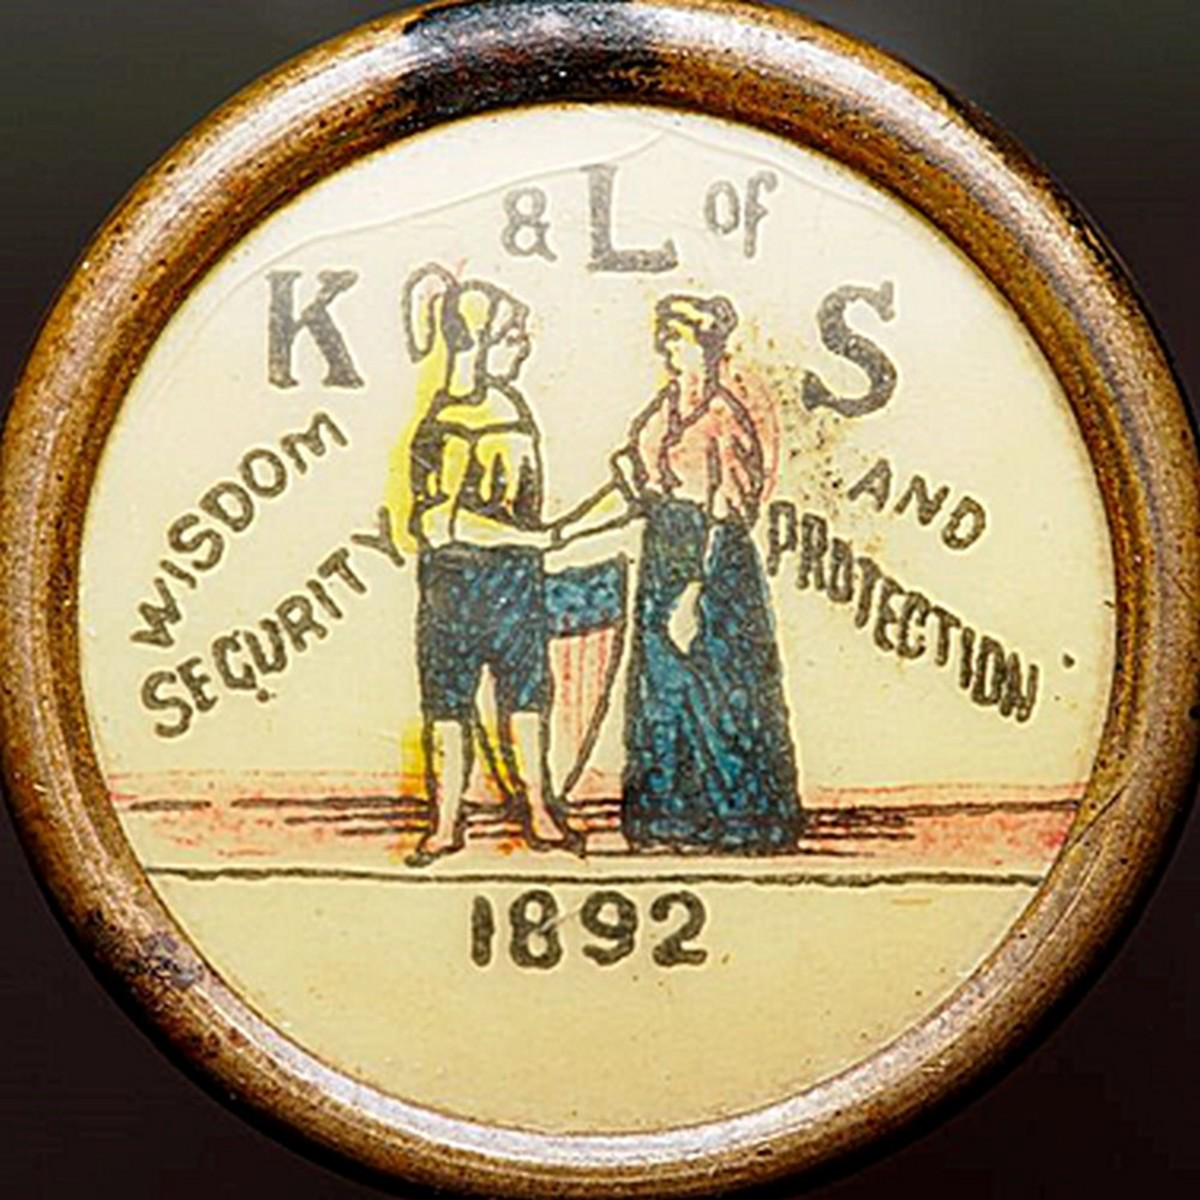 The Knights and Ladies of Security, a fraternal beneficiary society, operated a working farm, orphanage, home for the elderly, hospital, and clinic in Topeka, Kansas in the early 20th Century.